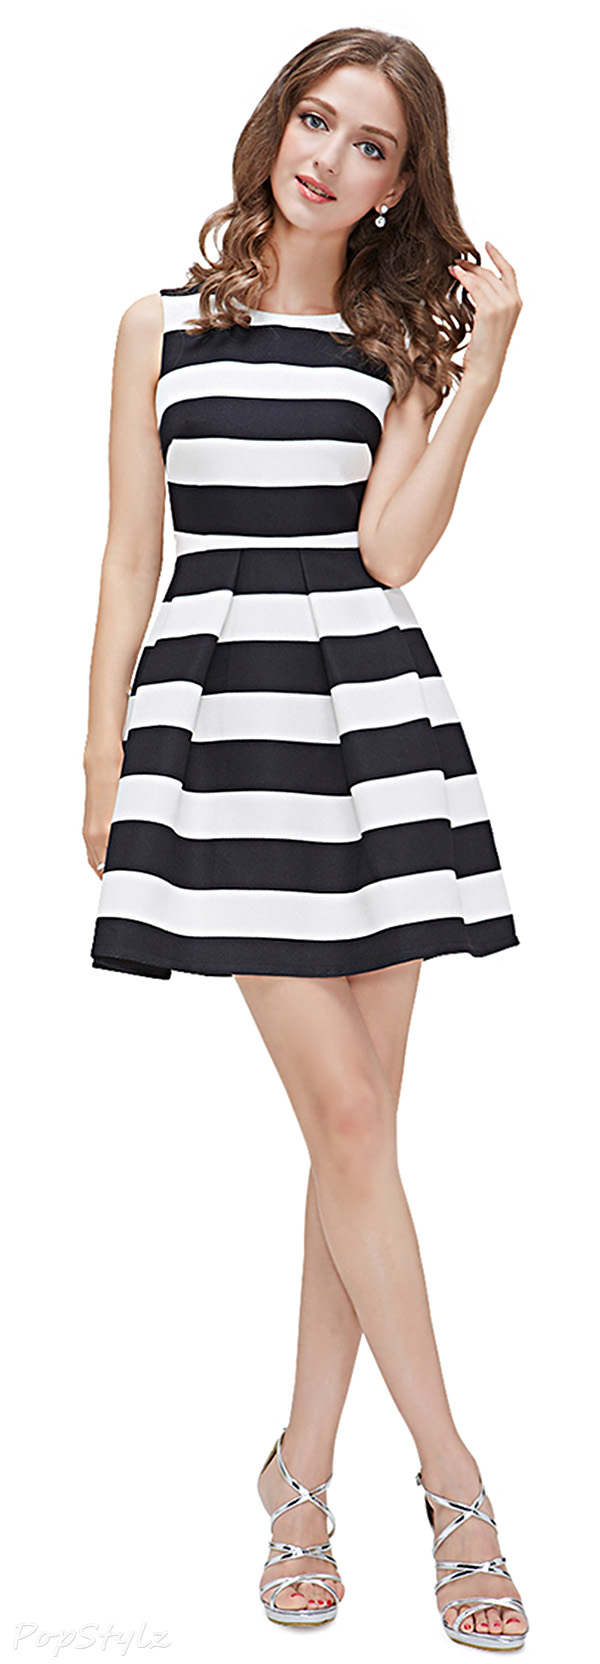 Alisa Pan 05085 Black Striped Fitted Short Casual Dress